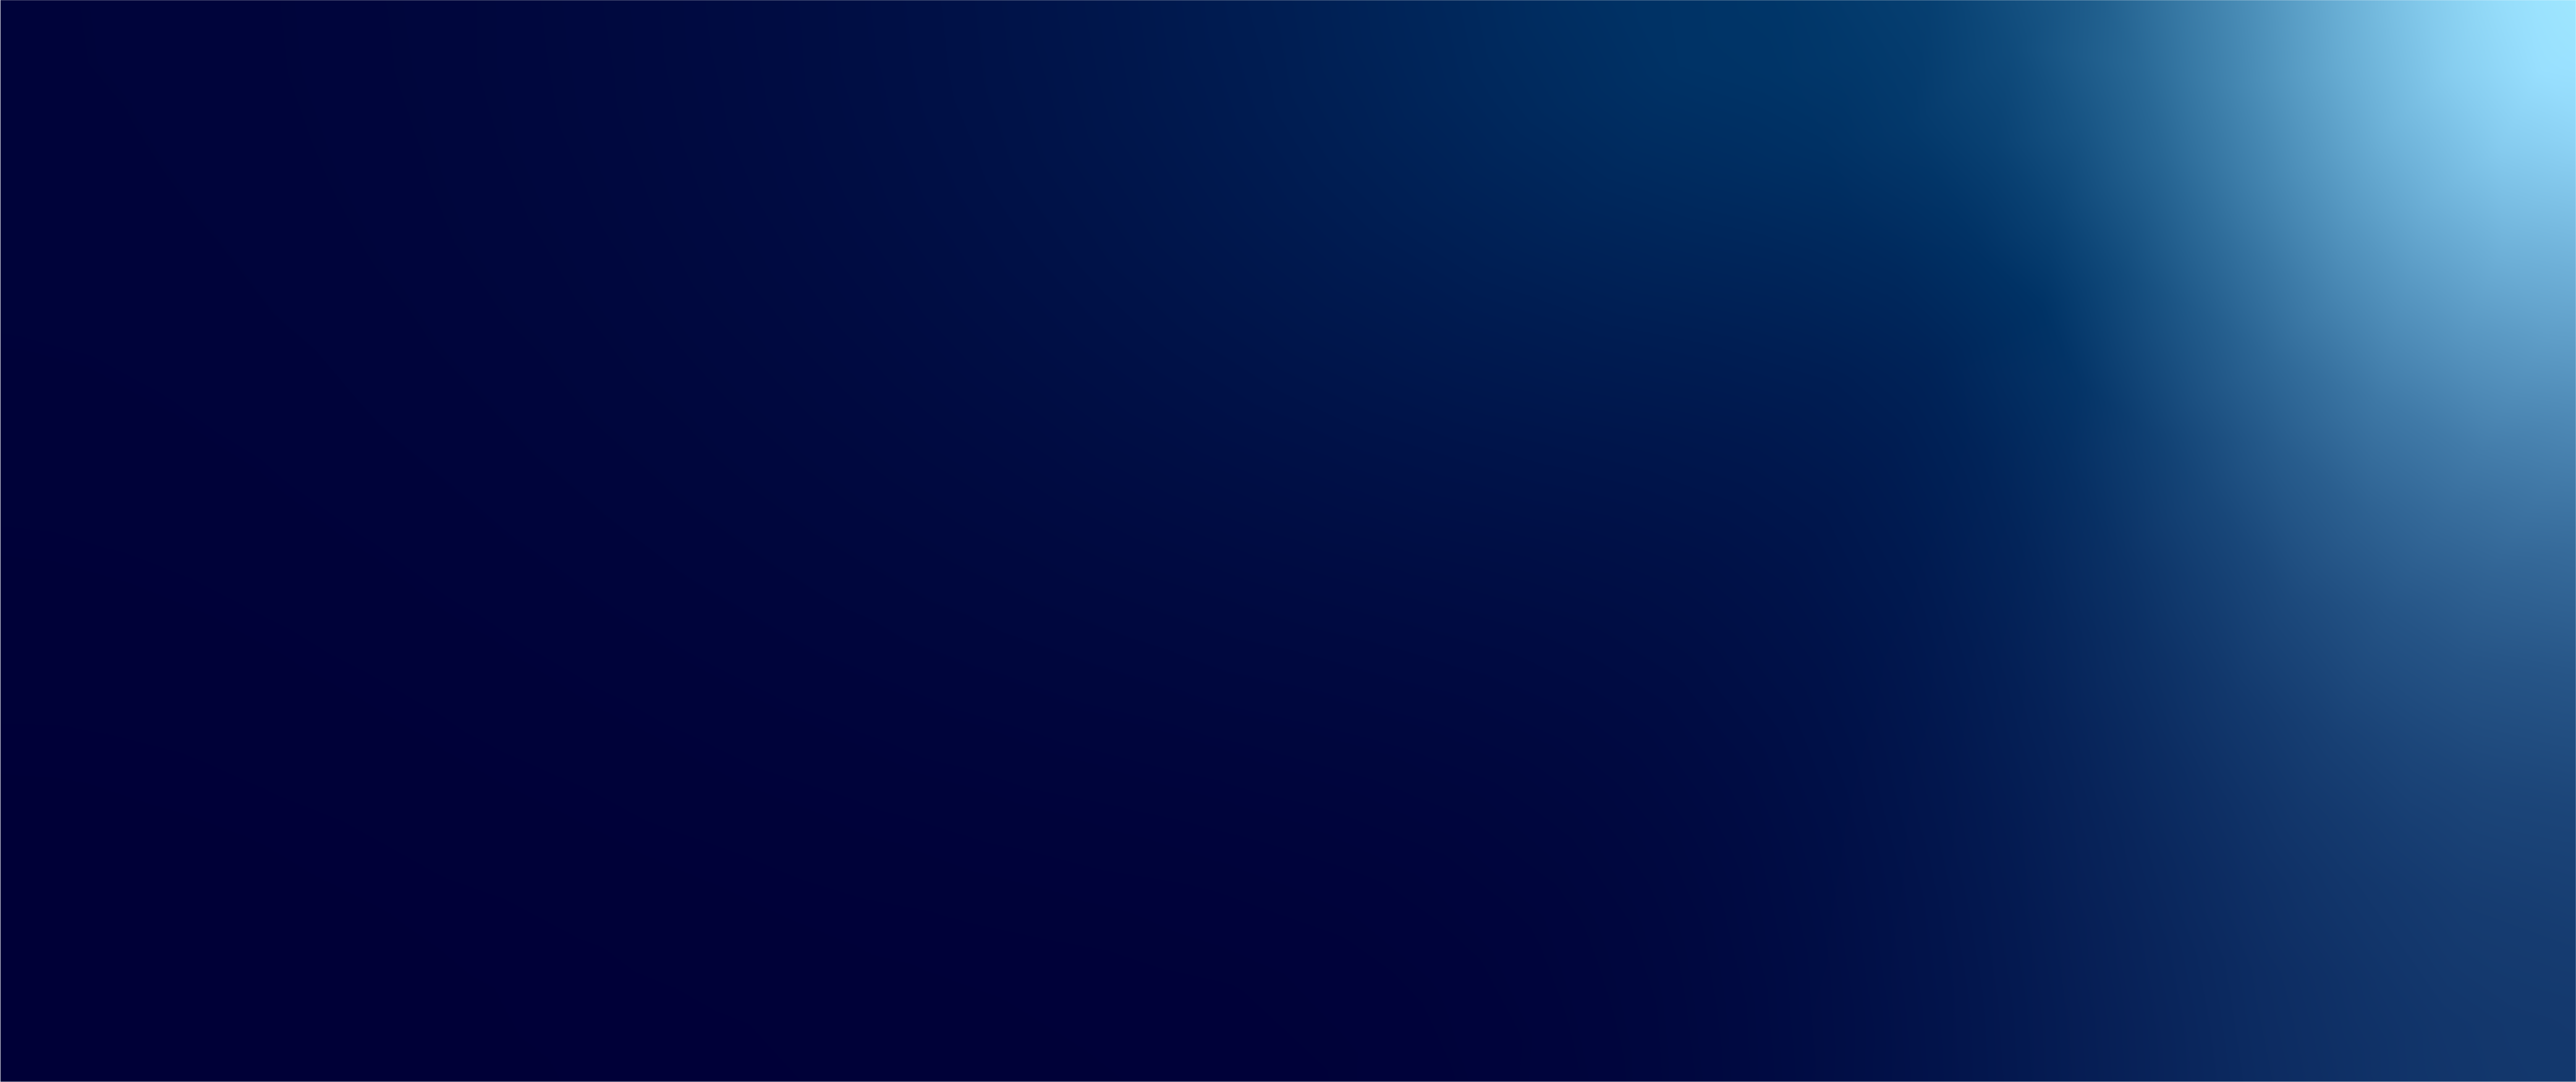 banner_reflected-01